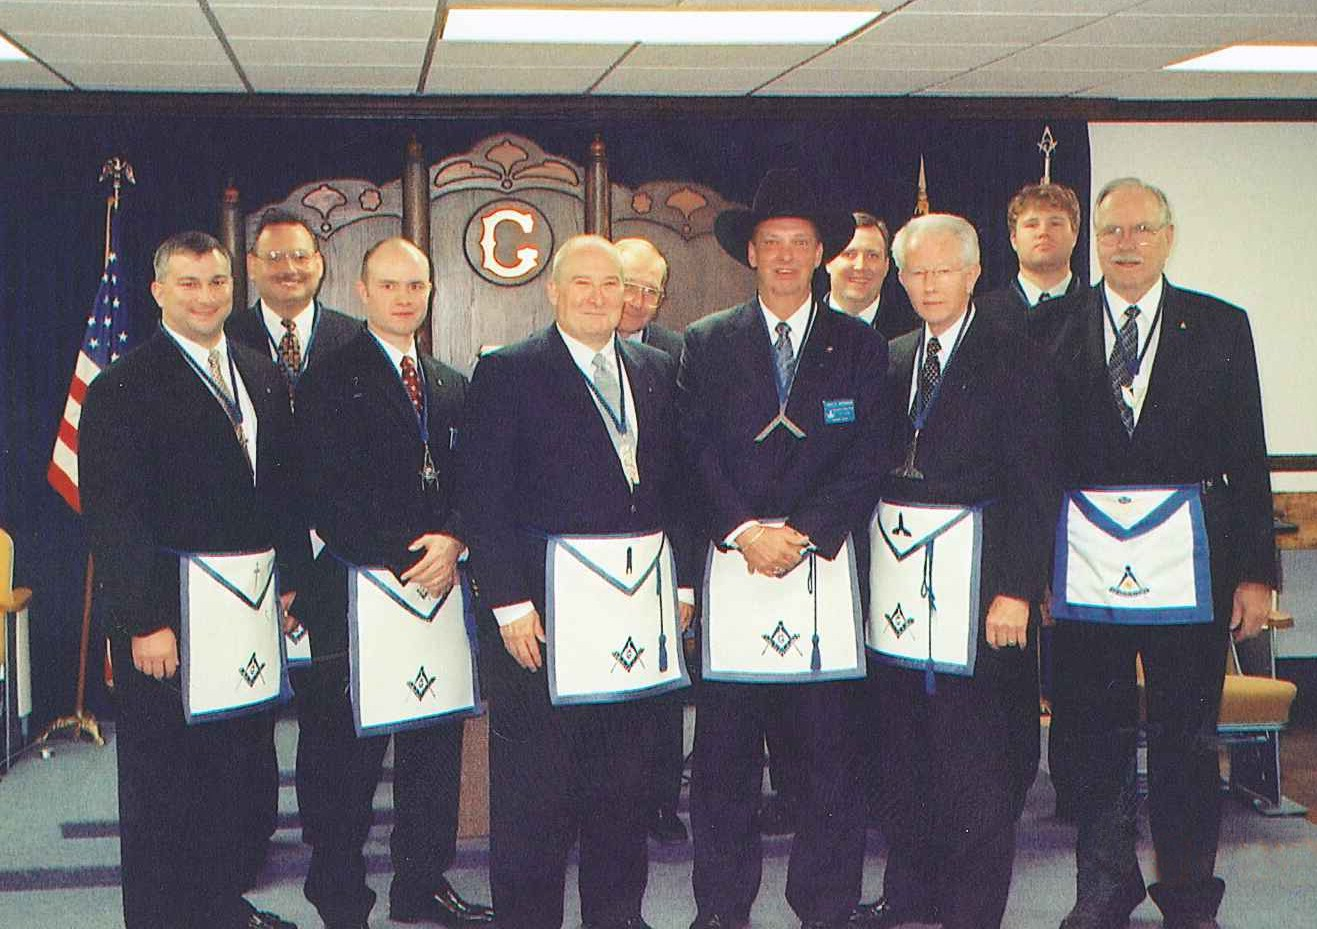 As we celebrate the installation of our new officers, we look back to the installa-tion of Gary McDon-ald and his officer line. We would like to thank Past Master Mark Mueller for providing the image and continue to en-courage anyone with historic images to forward copies to the Lodge Secretary.